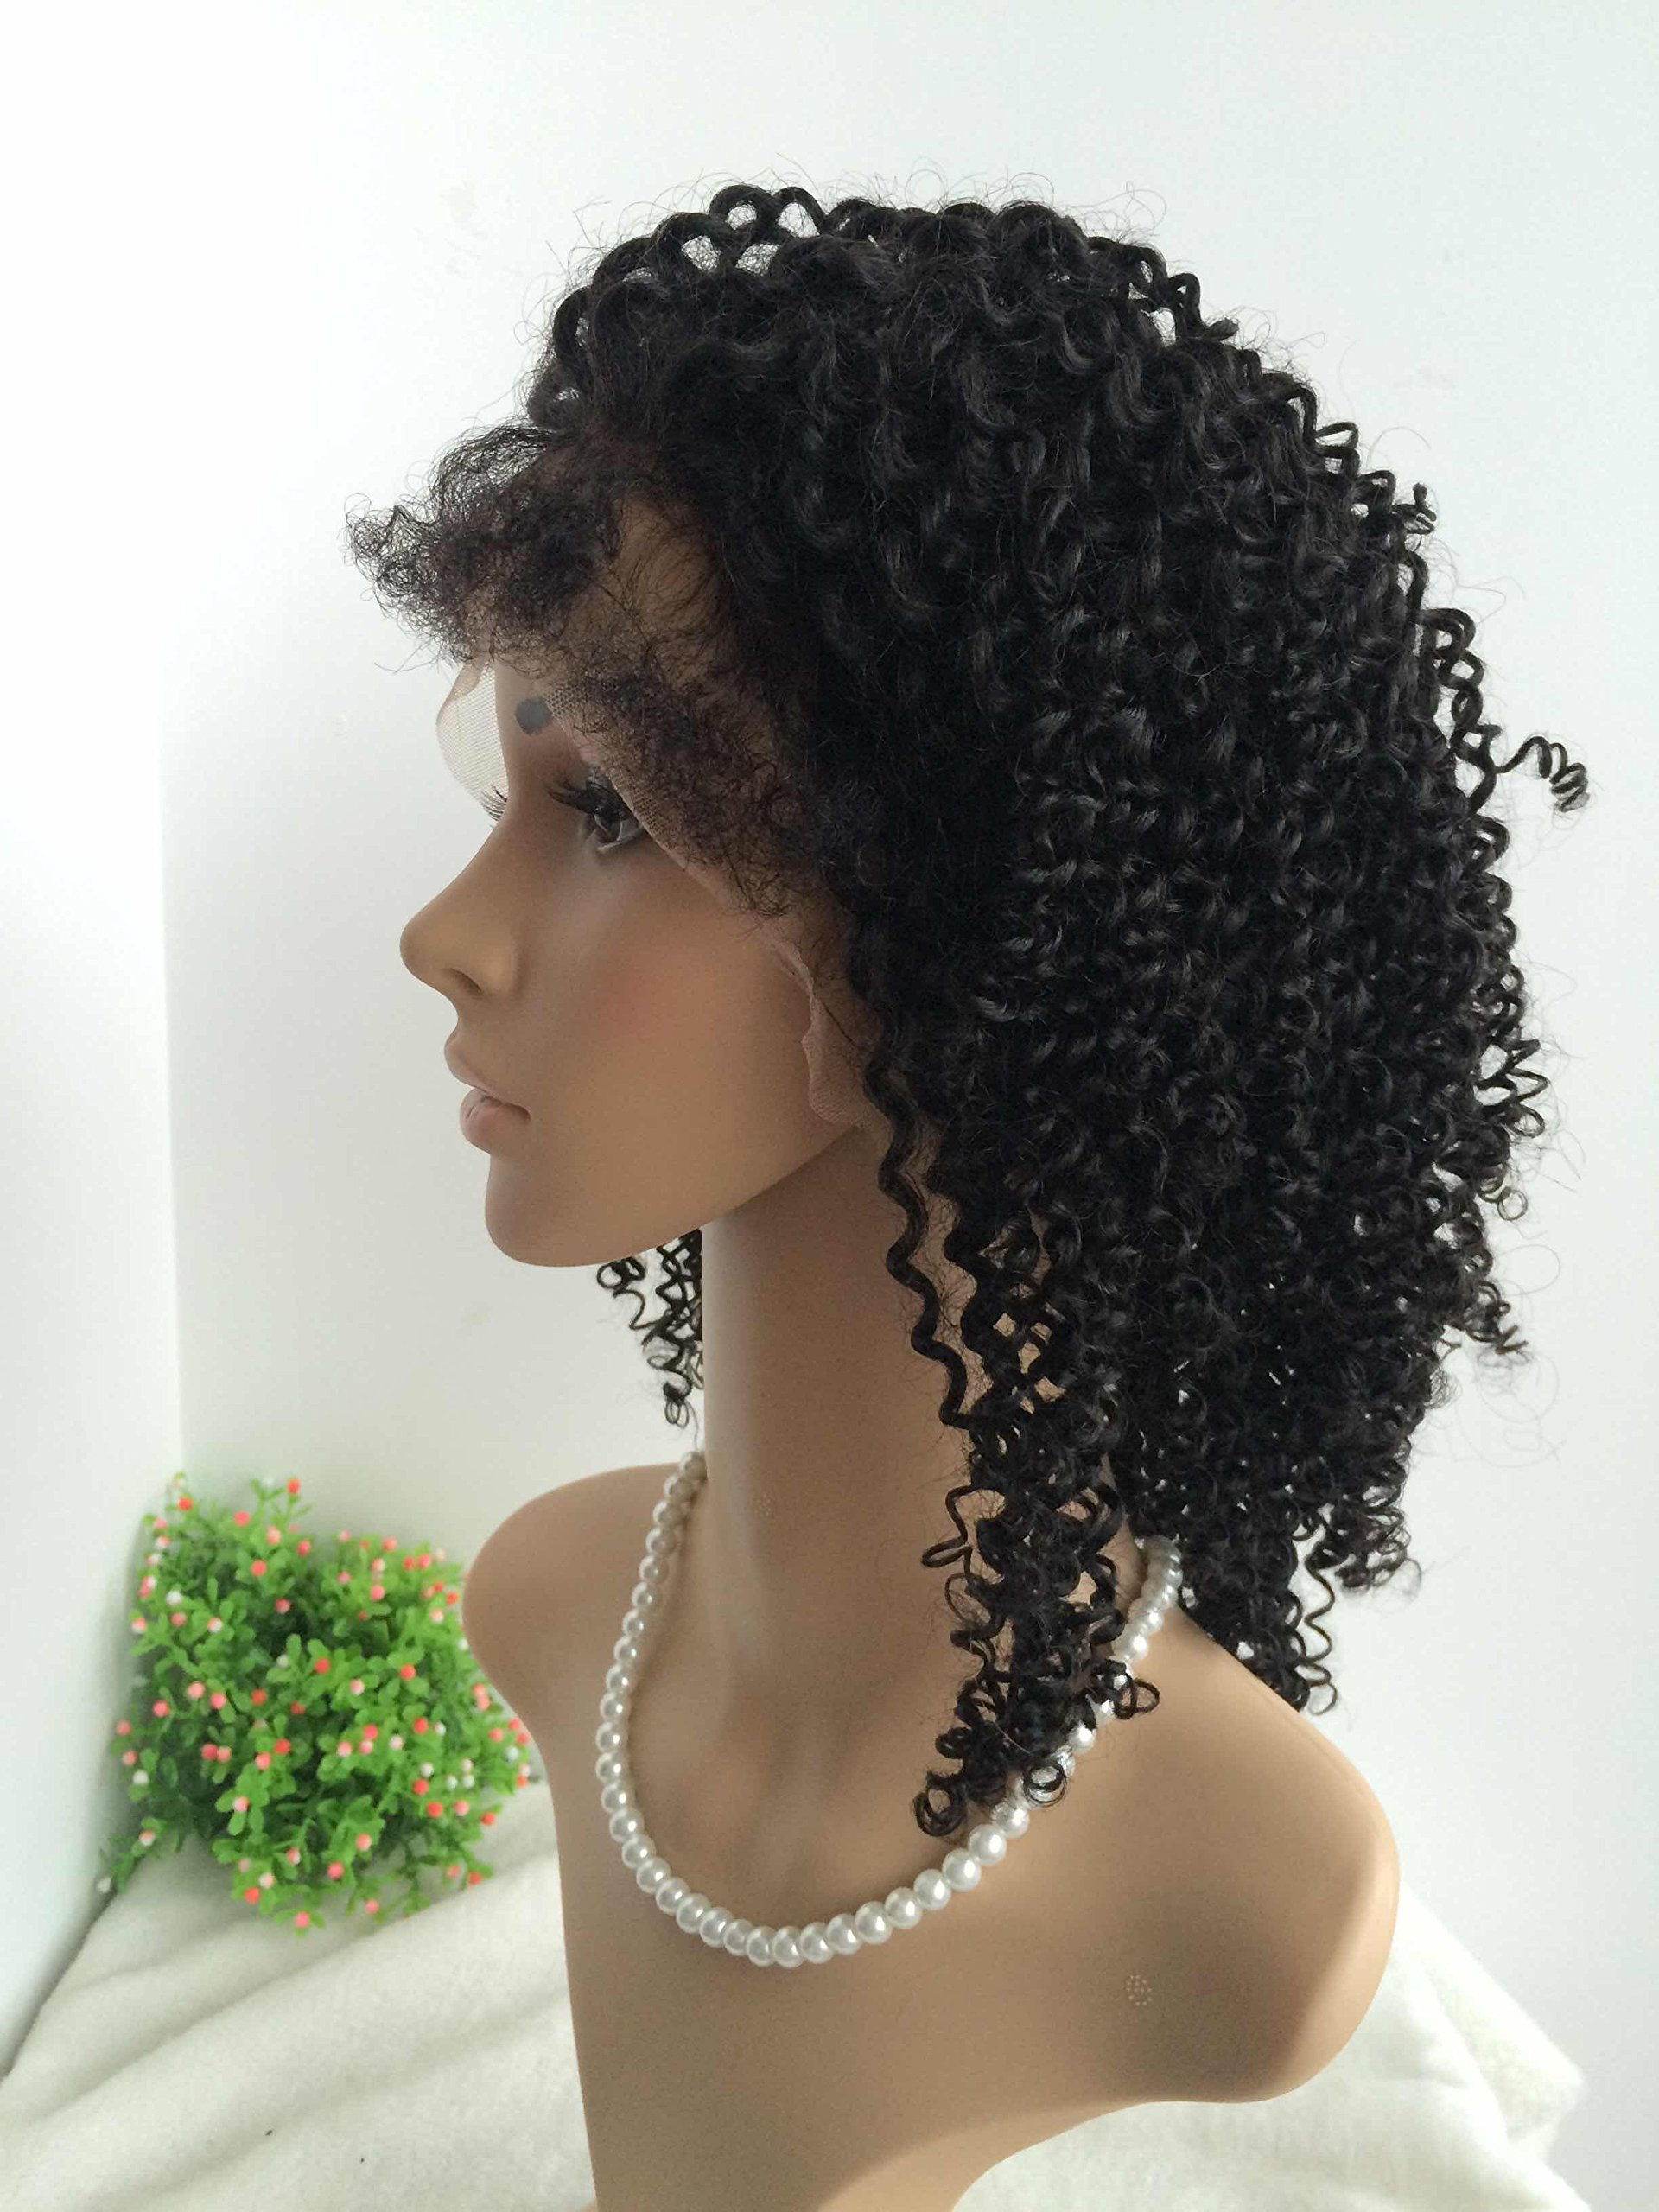 HOT ON SALE,CHINESE VIRGIN HUMAN HAIR,KINKY CURL,GLUELESS FULL LACE SILK TOP WIG-BW0040